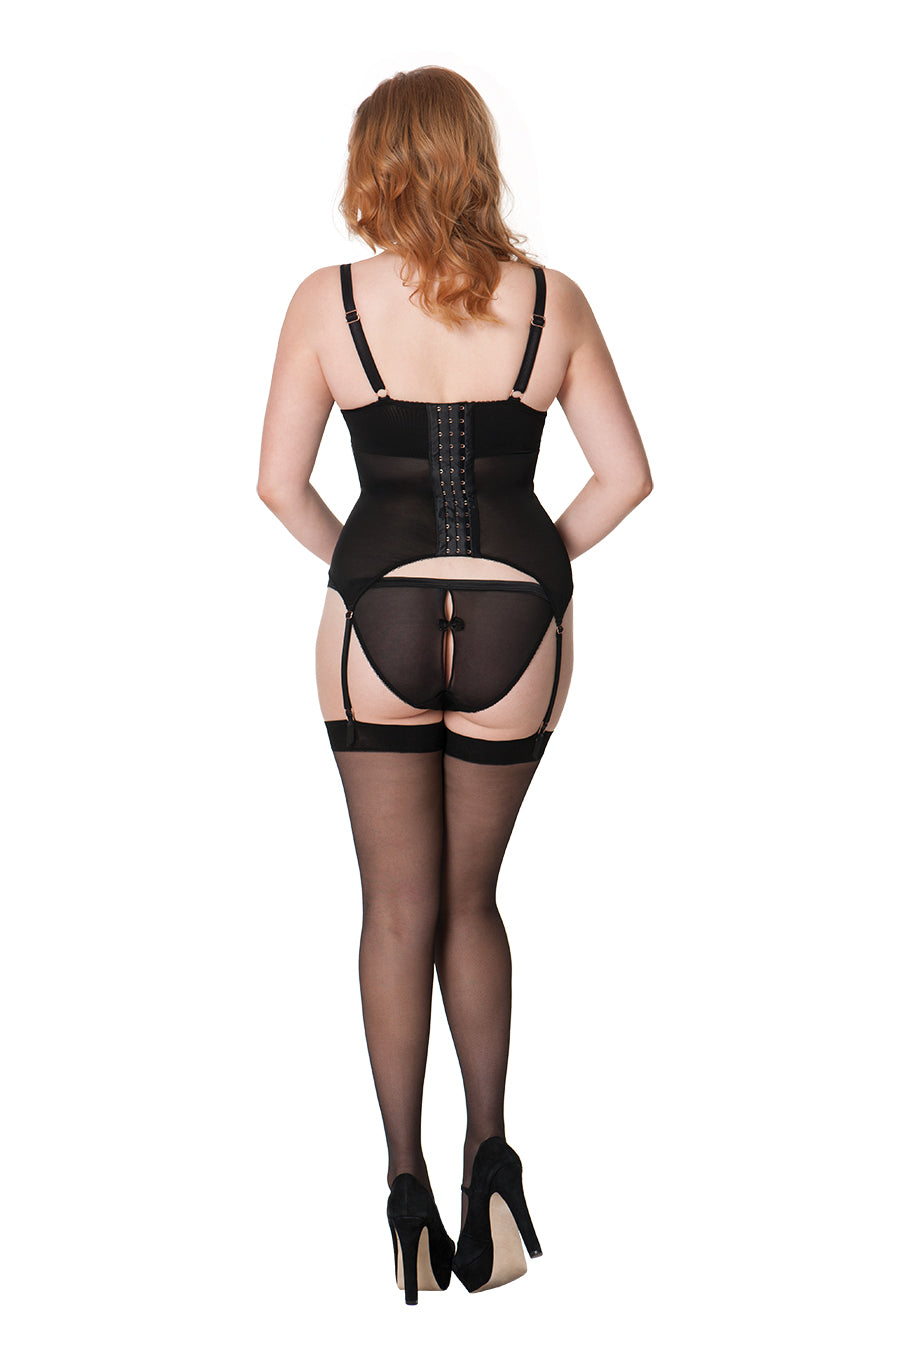 Scantilly by Curvy Kate Surrender Basque ST2407